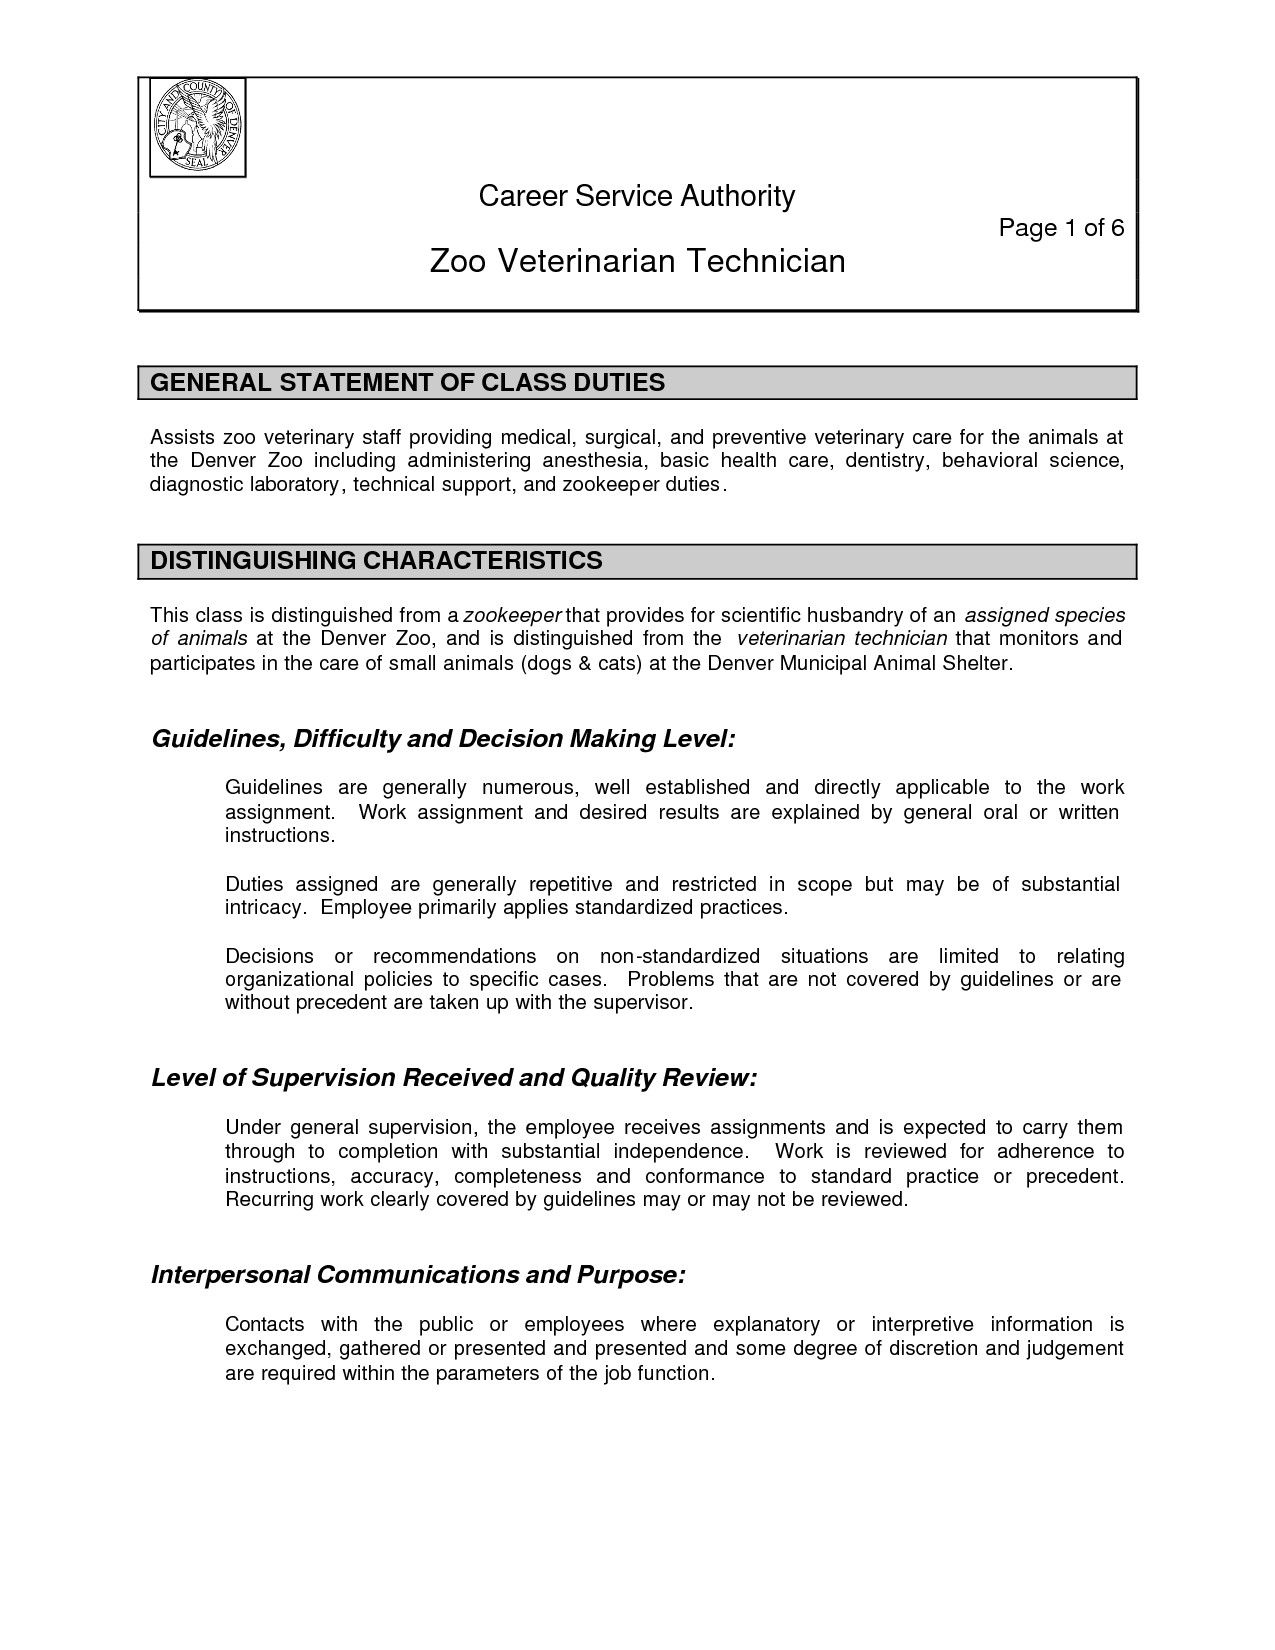 Animal Care Assistant Sample Resume Beauteous Zoo  Zoos Template And Sample Resume